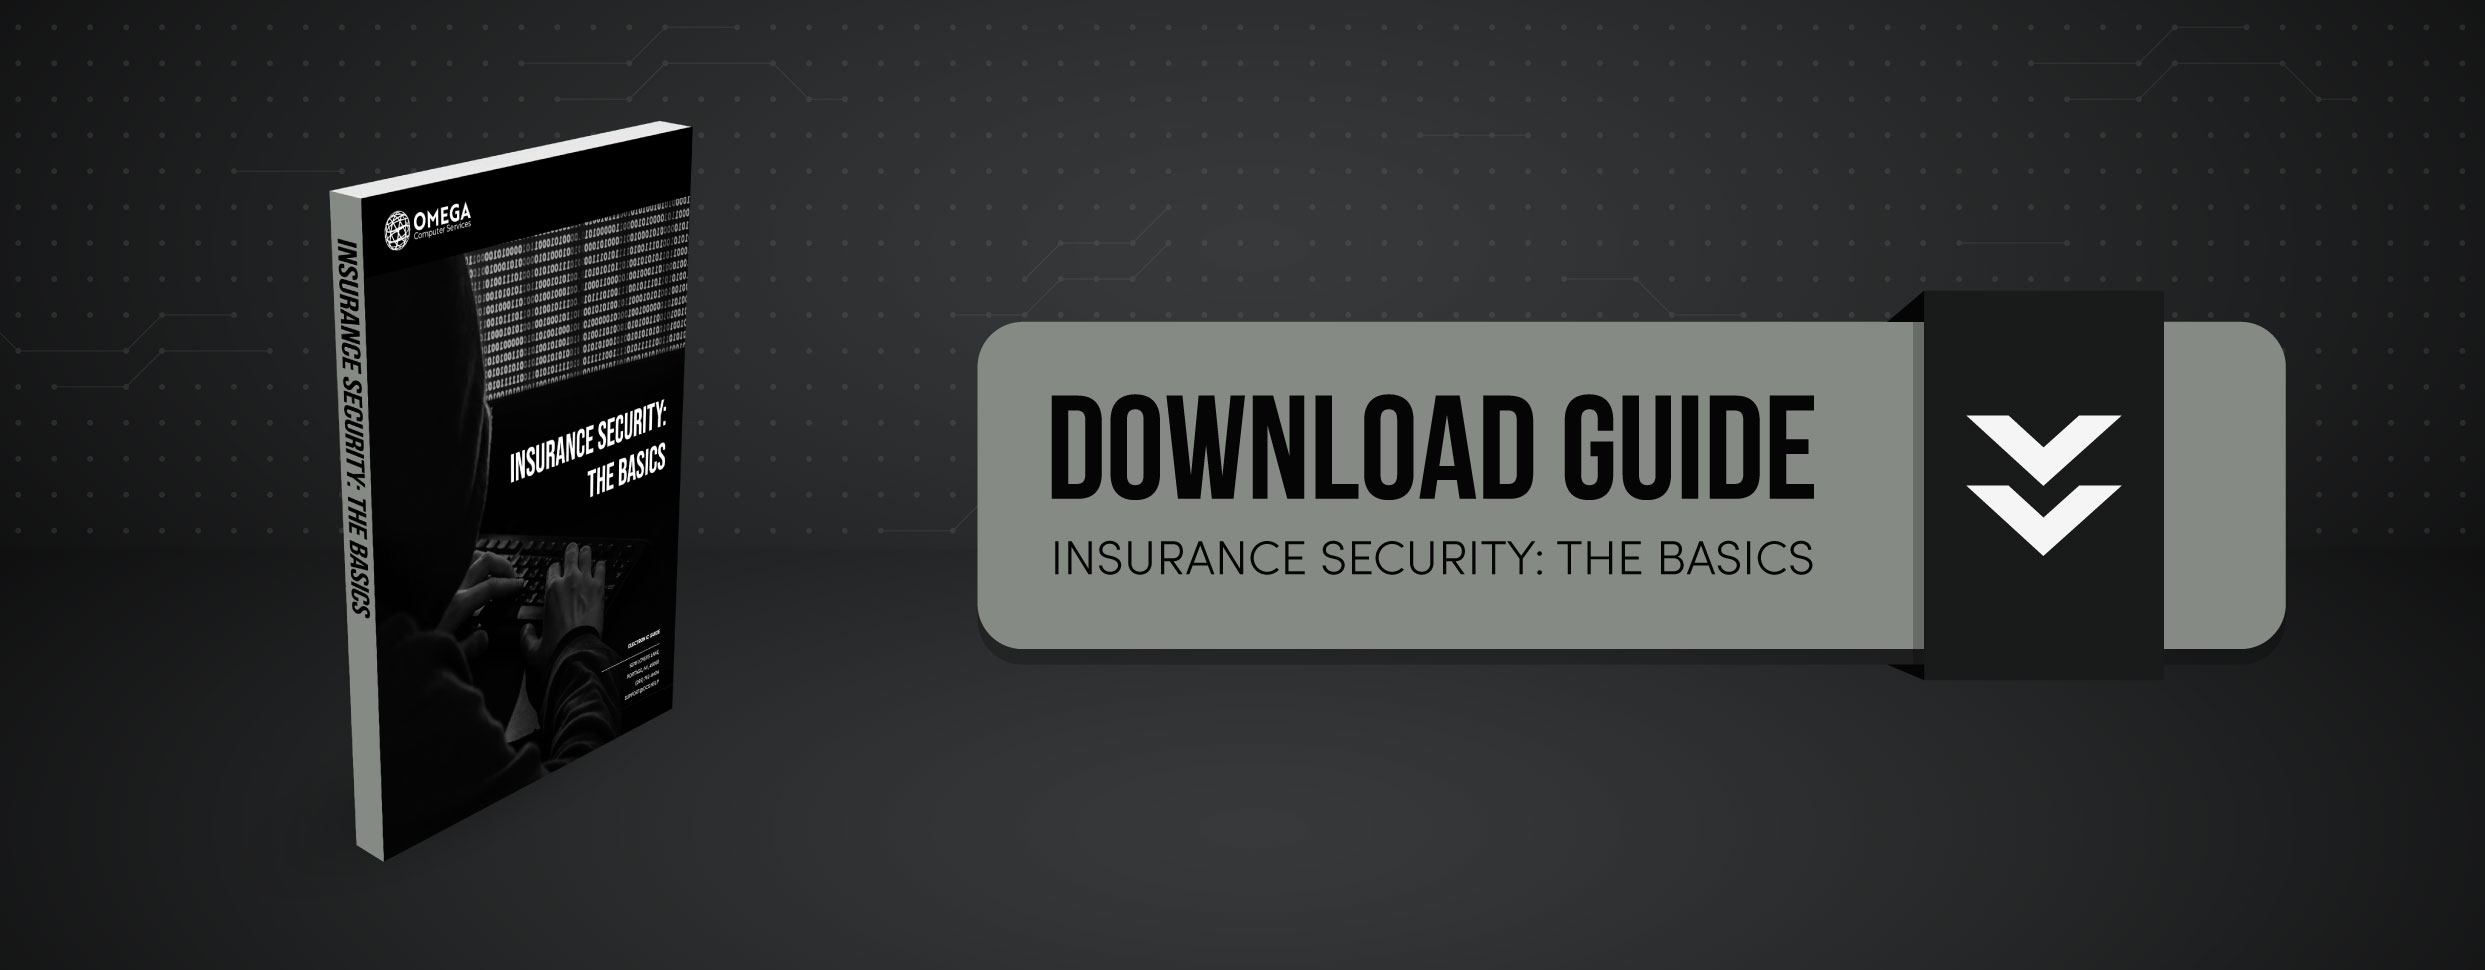 Insurance security guide